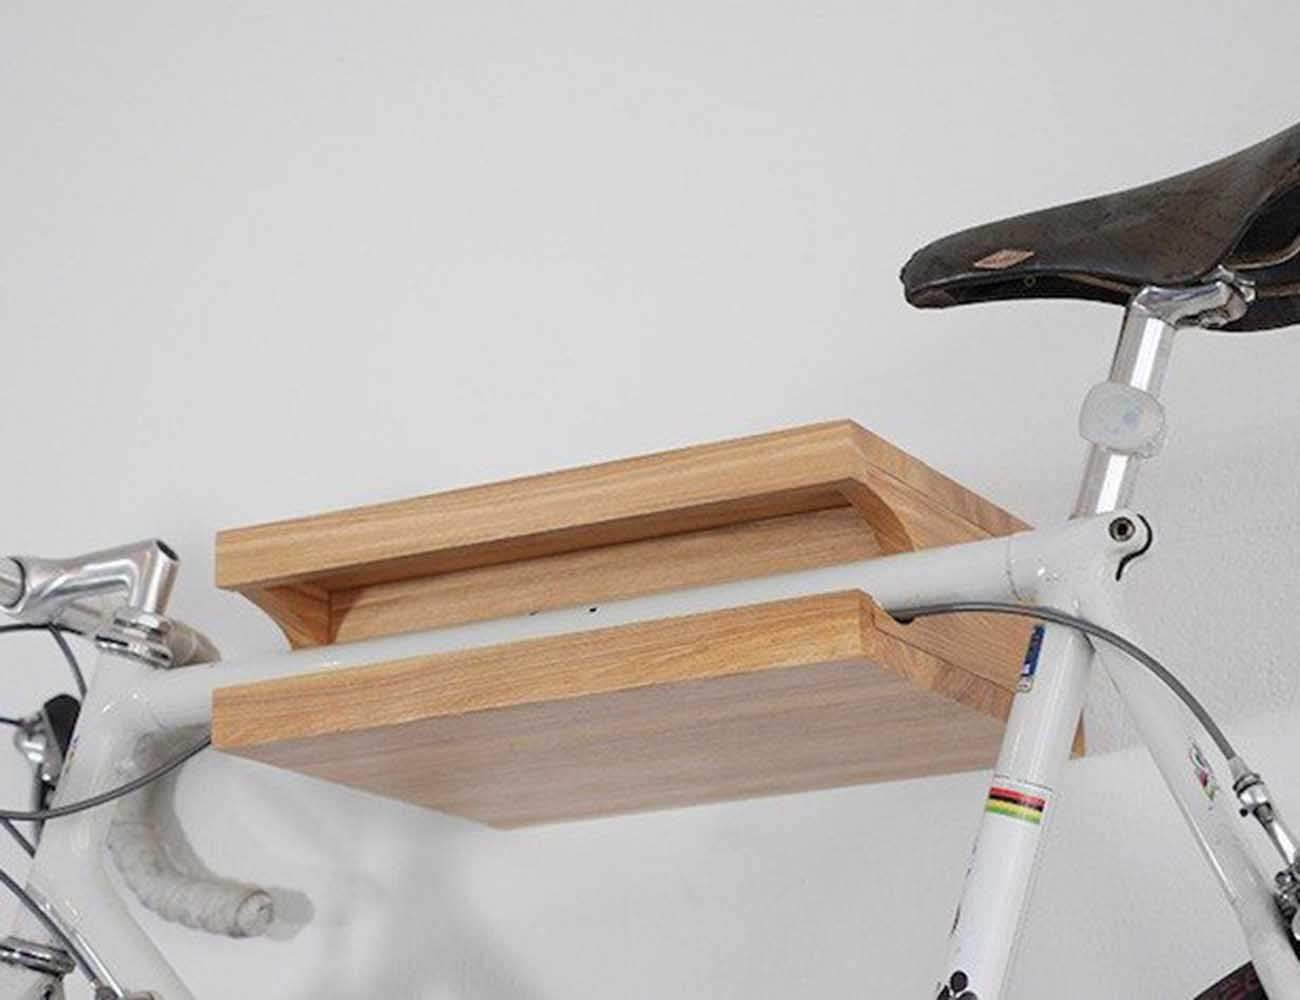 bikefritz – The Beautiful Wooden Bike Shelf